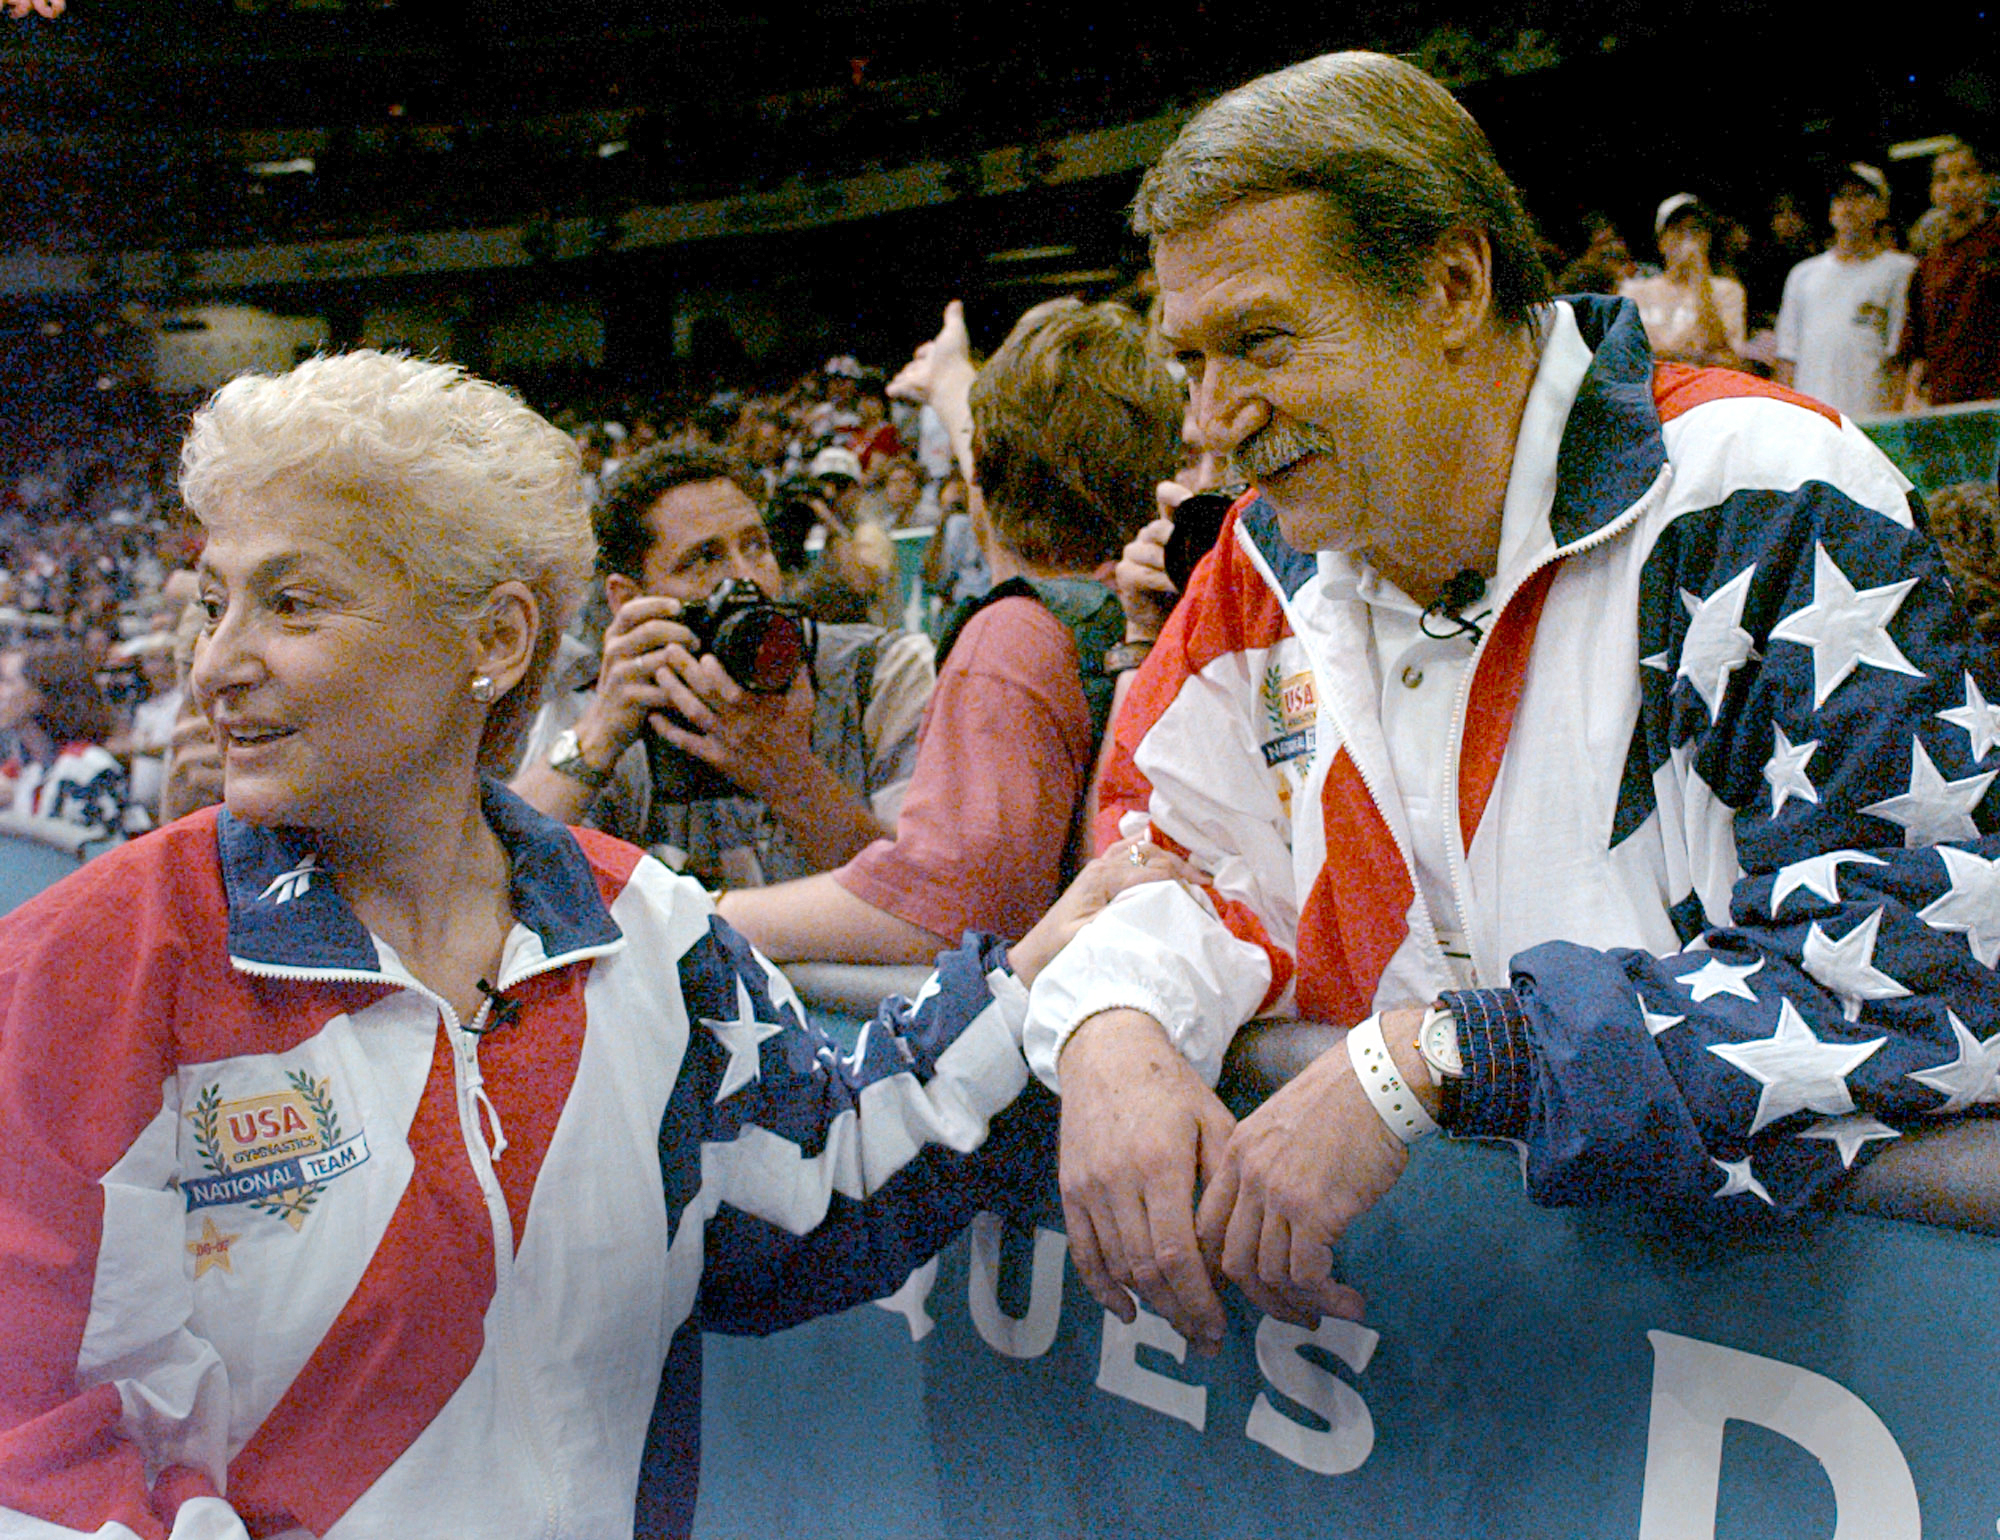 FILE - In this July 23, 2004, file photo, Martha and Bela Karolyi watch together as the U.S. women's gymnastic team celebrates winning the gold medal at the Centennial Summer Olympic Games in Atlanta. The latest lawsuit filed Thursday, Oct. 27, 2016, accu